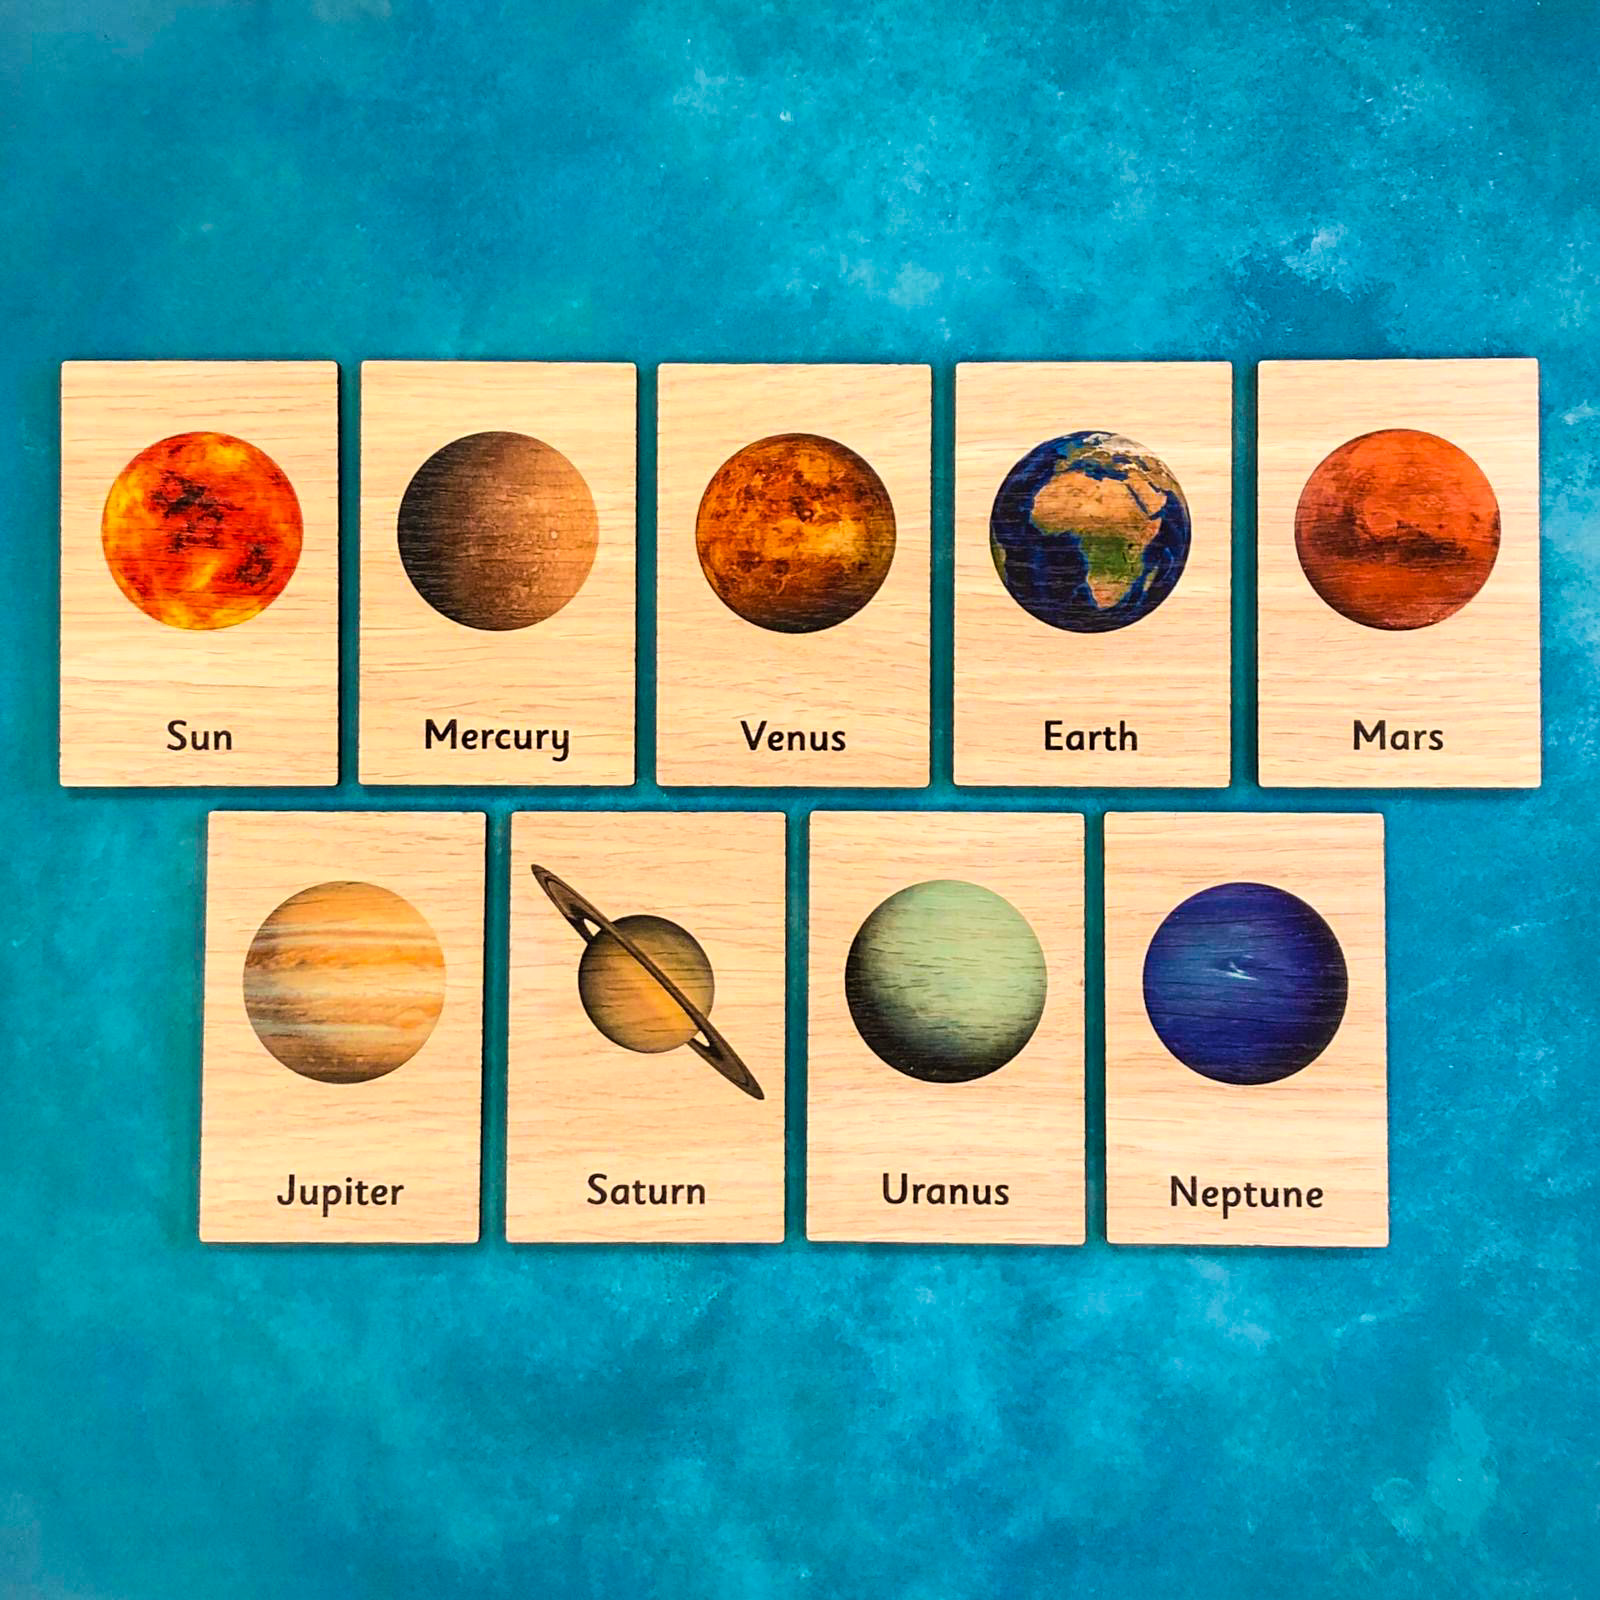 Montessori Inspired Wooden Learning Tiles - Solar System